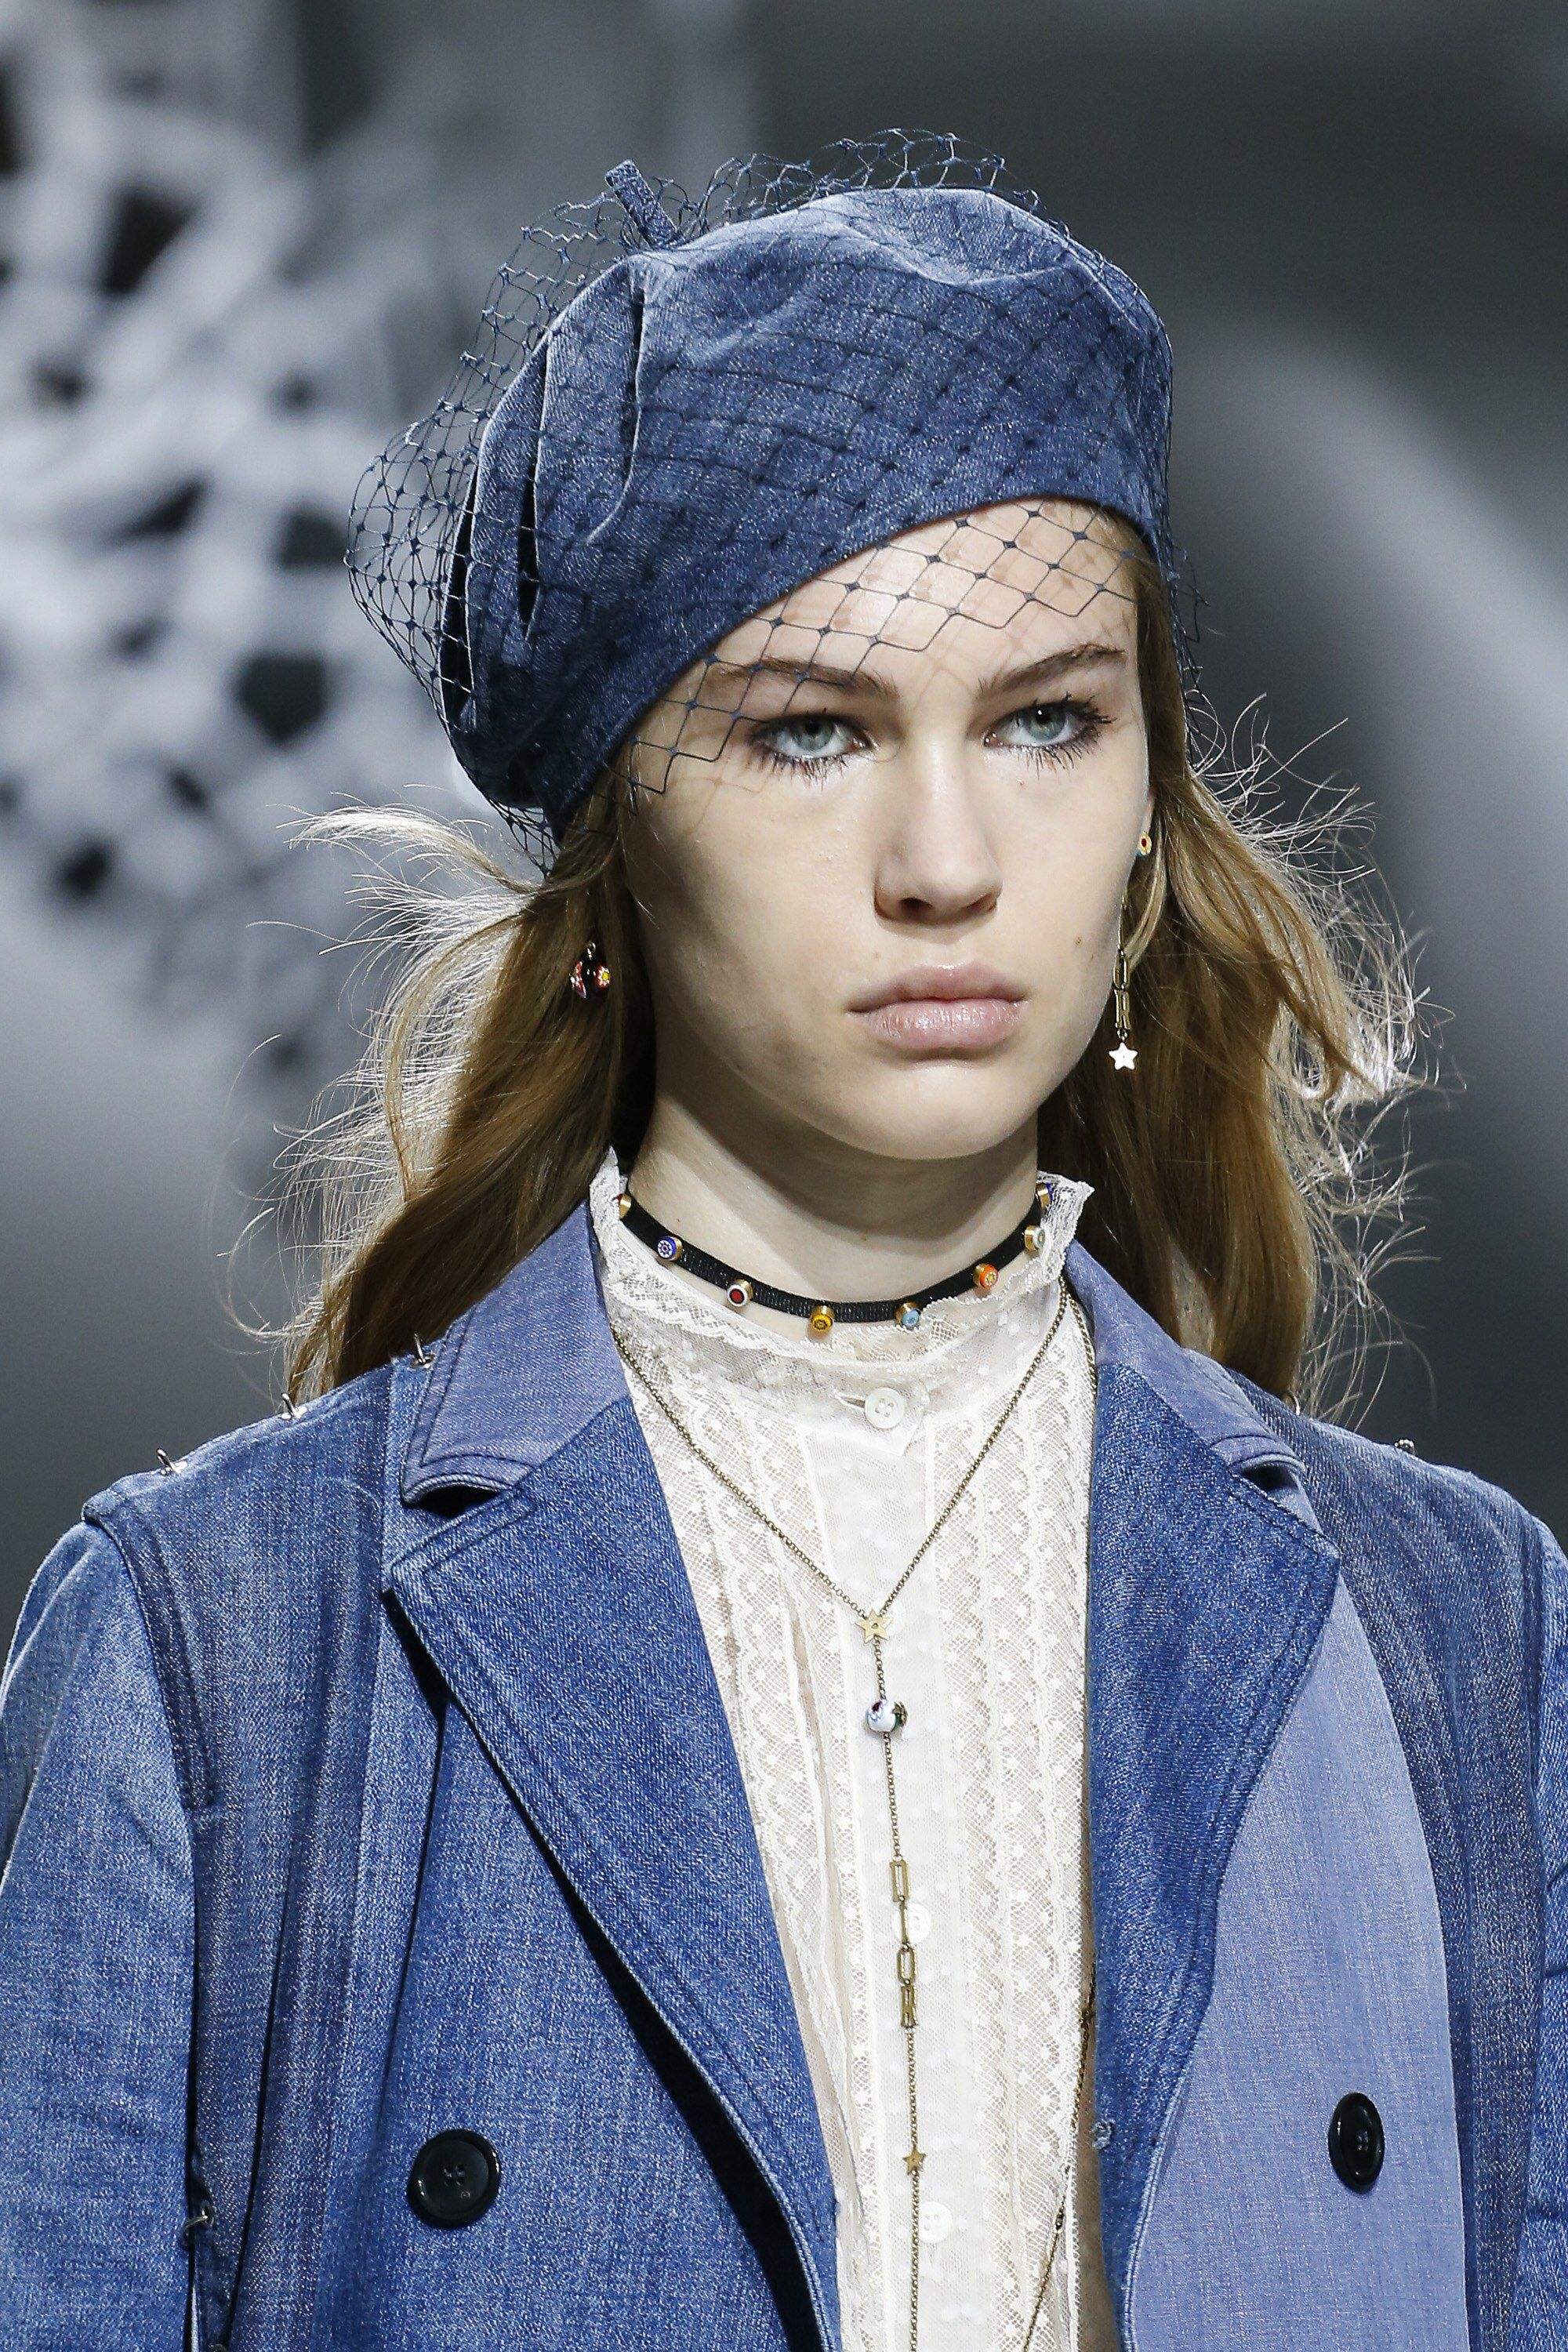 Christian Dior Spring 2018 Beret - Summer Fashion Trends 2018 - Vogue via Marcus Tondo / Indigital - beret fashion trend 2018 - berets spring 2018